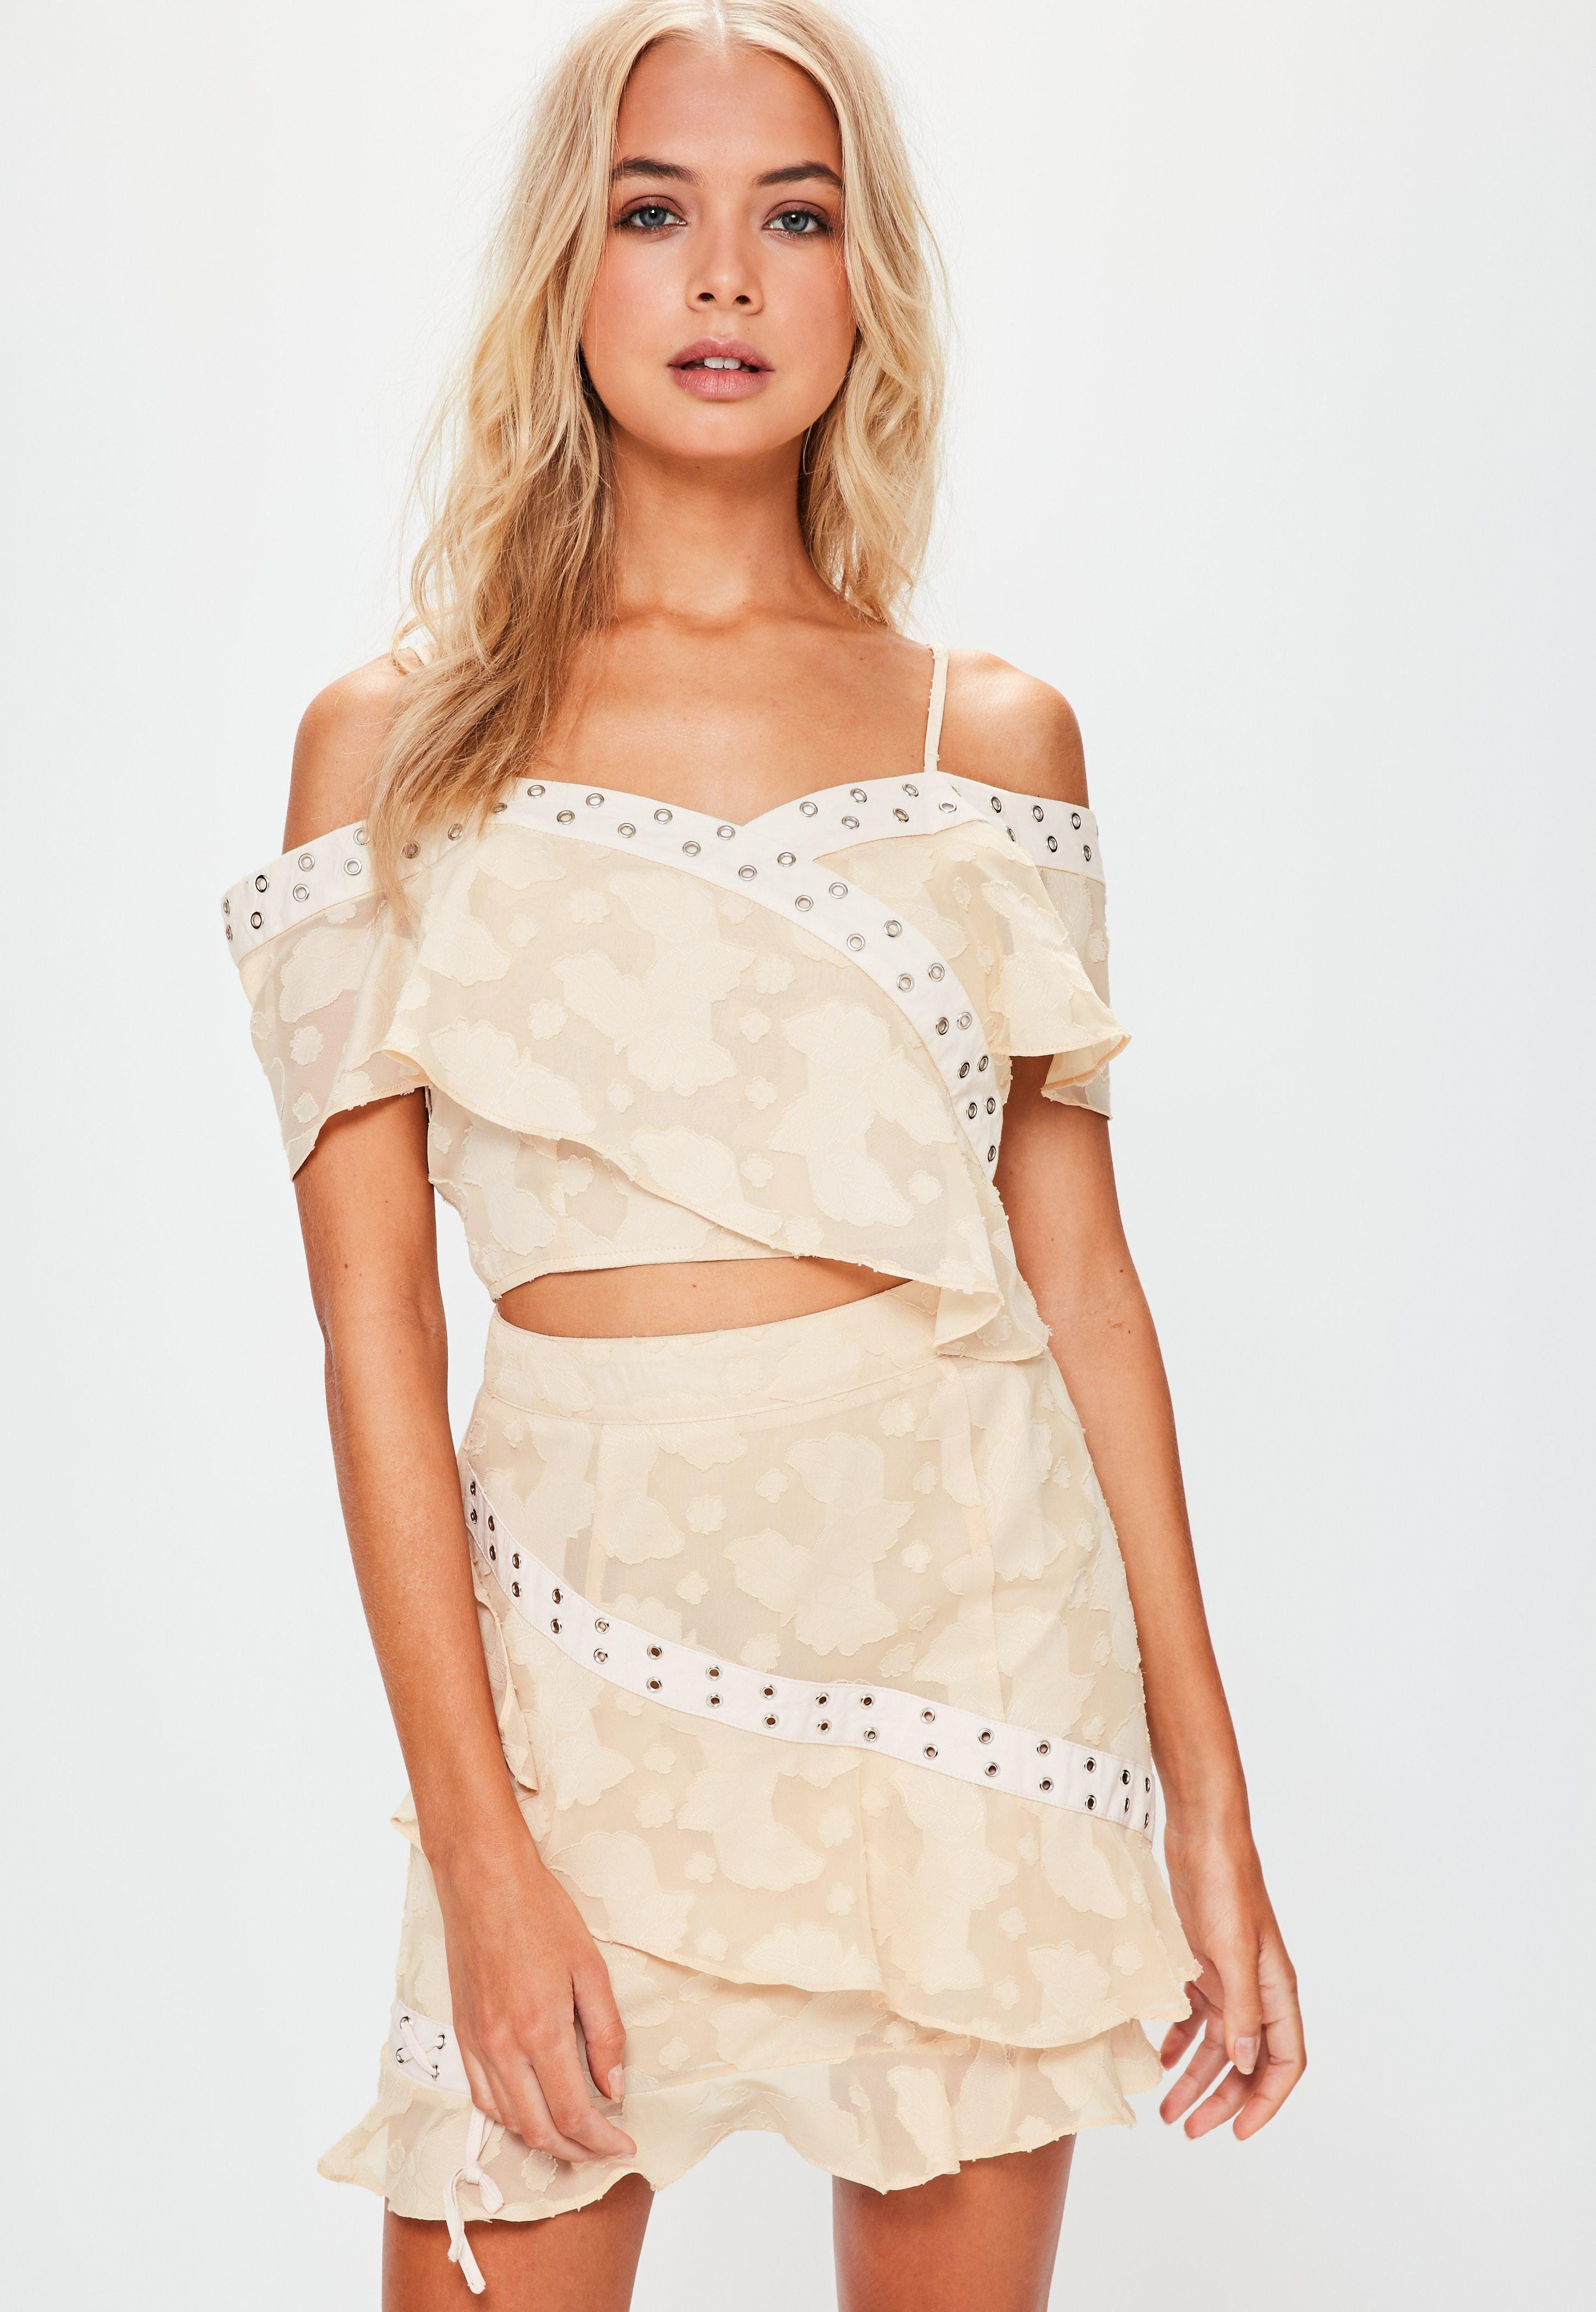 82c10bfaf4 Missguided Nude Textured Frill Mini Skirt in Natural - Lyst